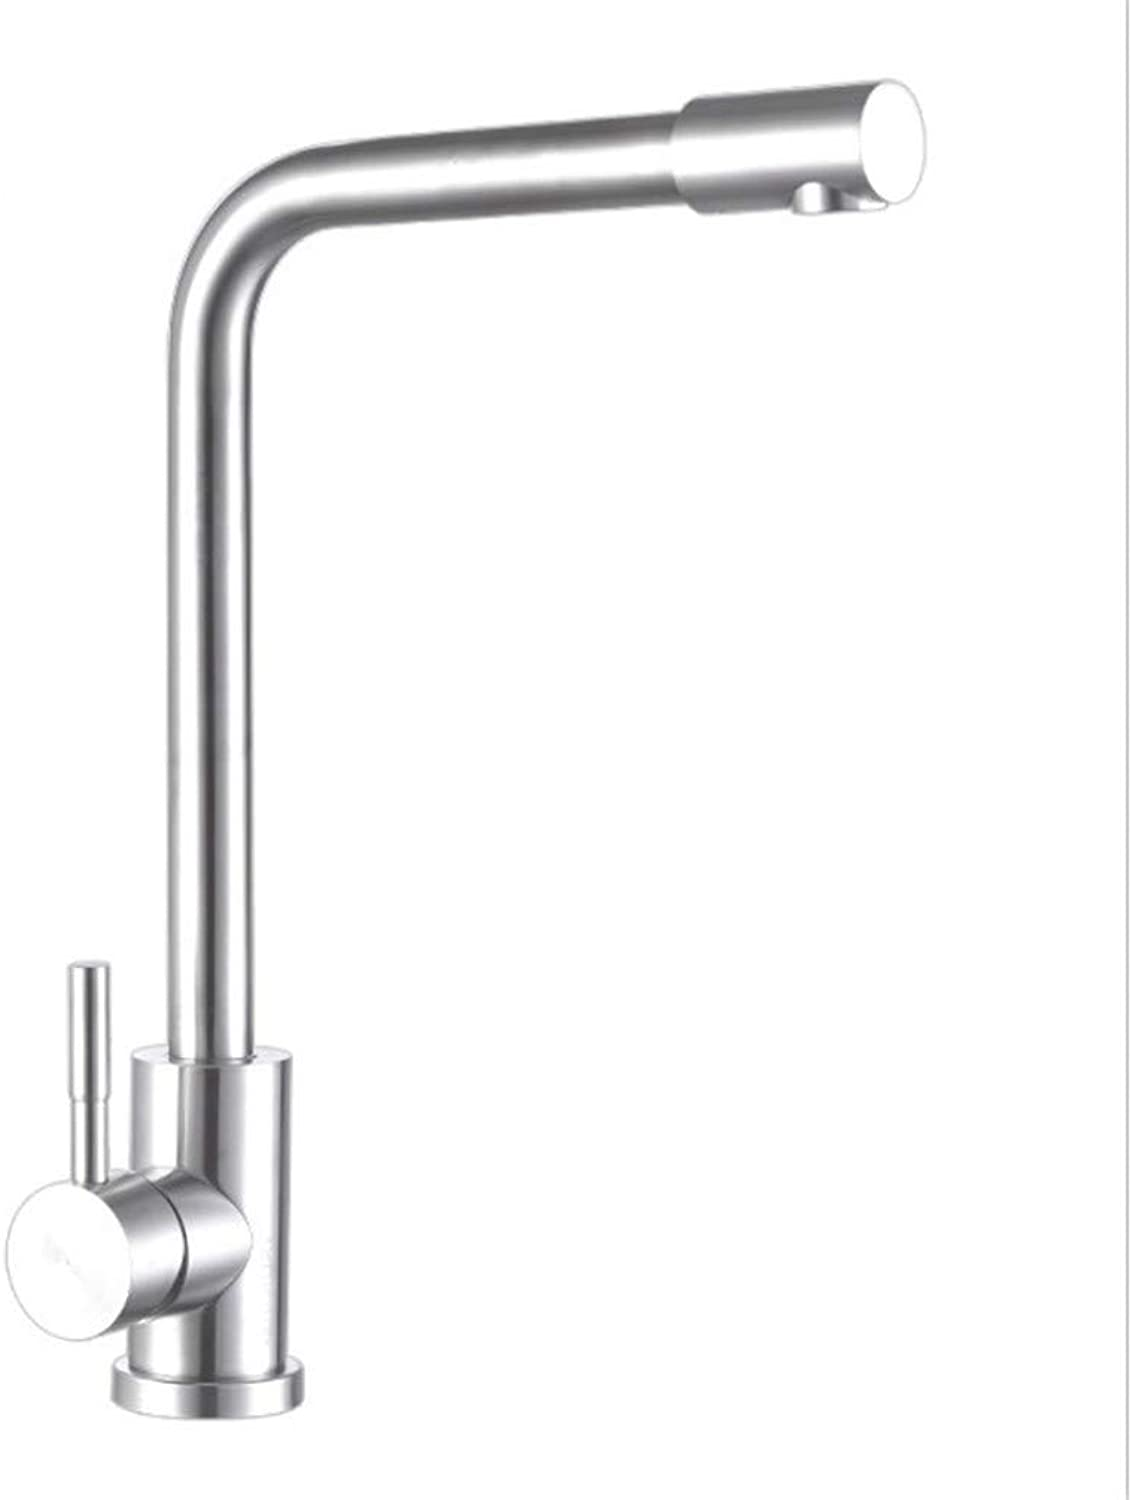 Pull Out The Pull Down Stainless Steel304 Stainless Steel Lead-Free Kitchen Faucets, Hot and Cold Dishes, Pots, Faucets, 360 redations.